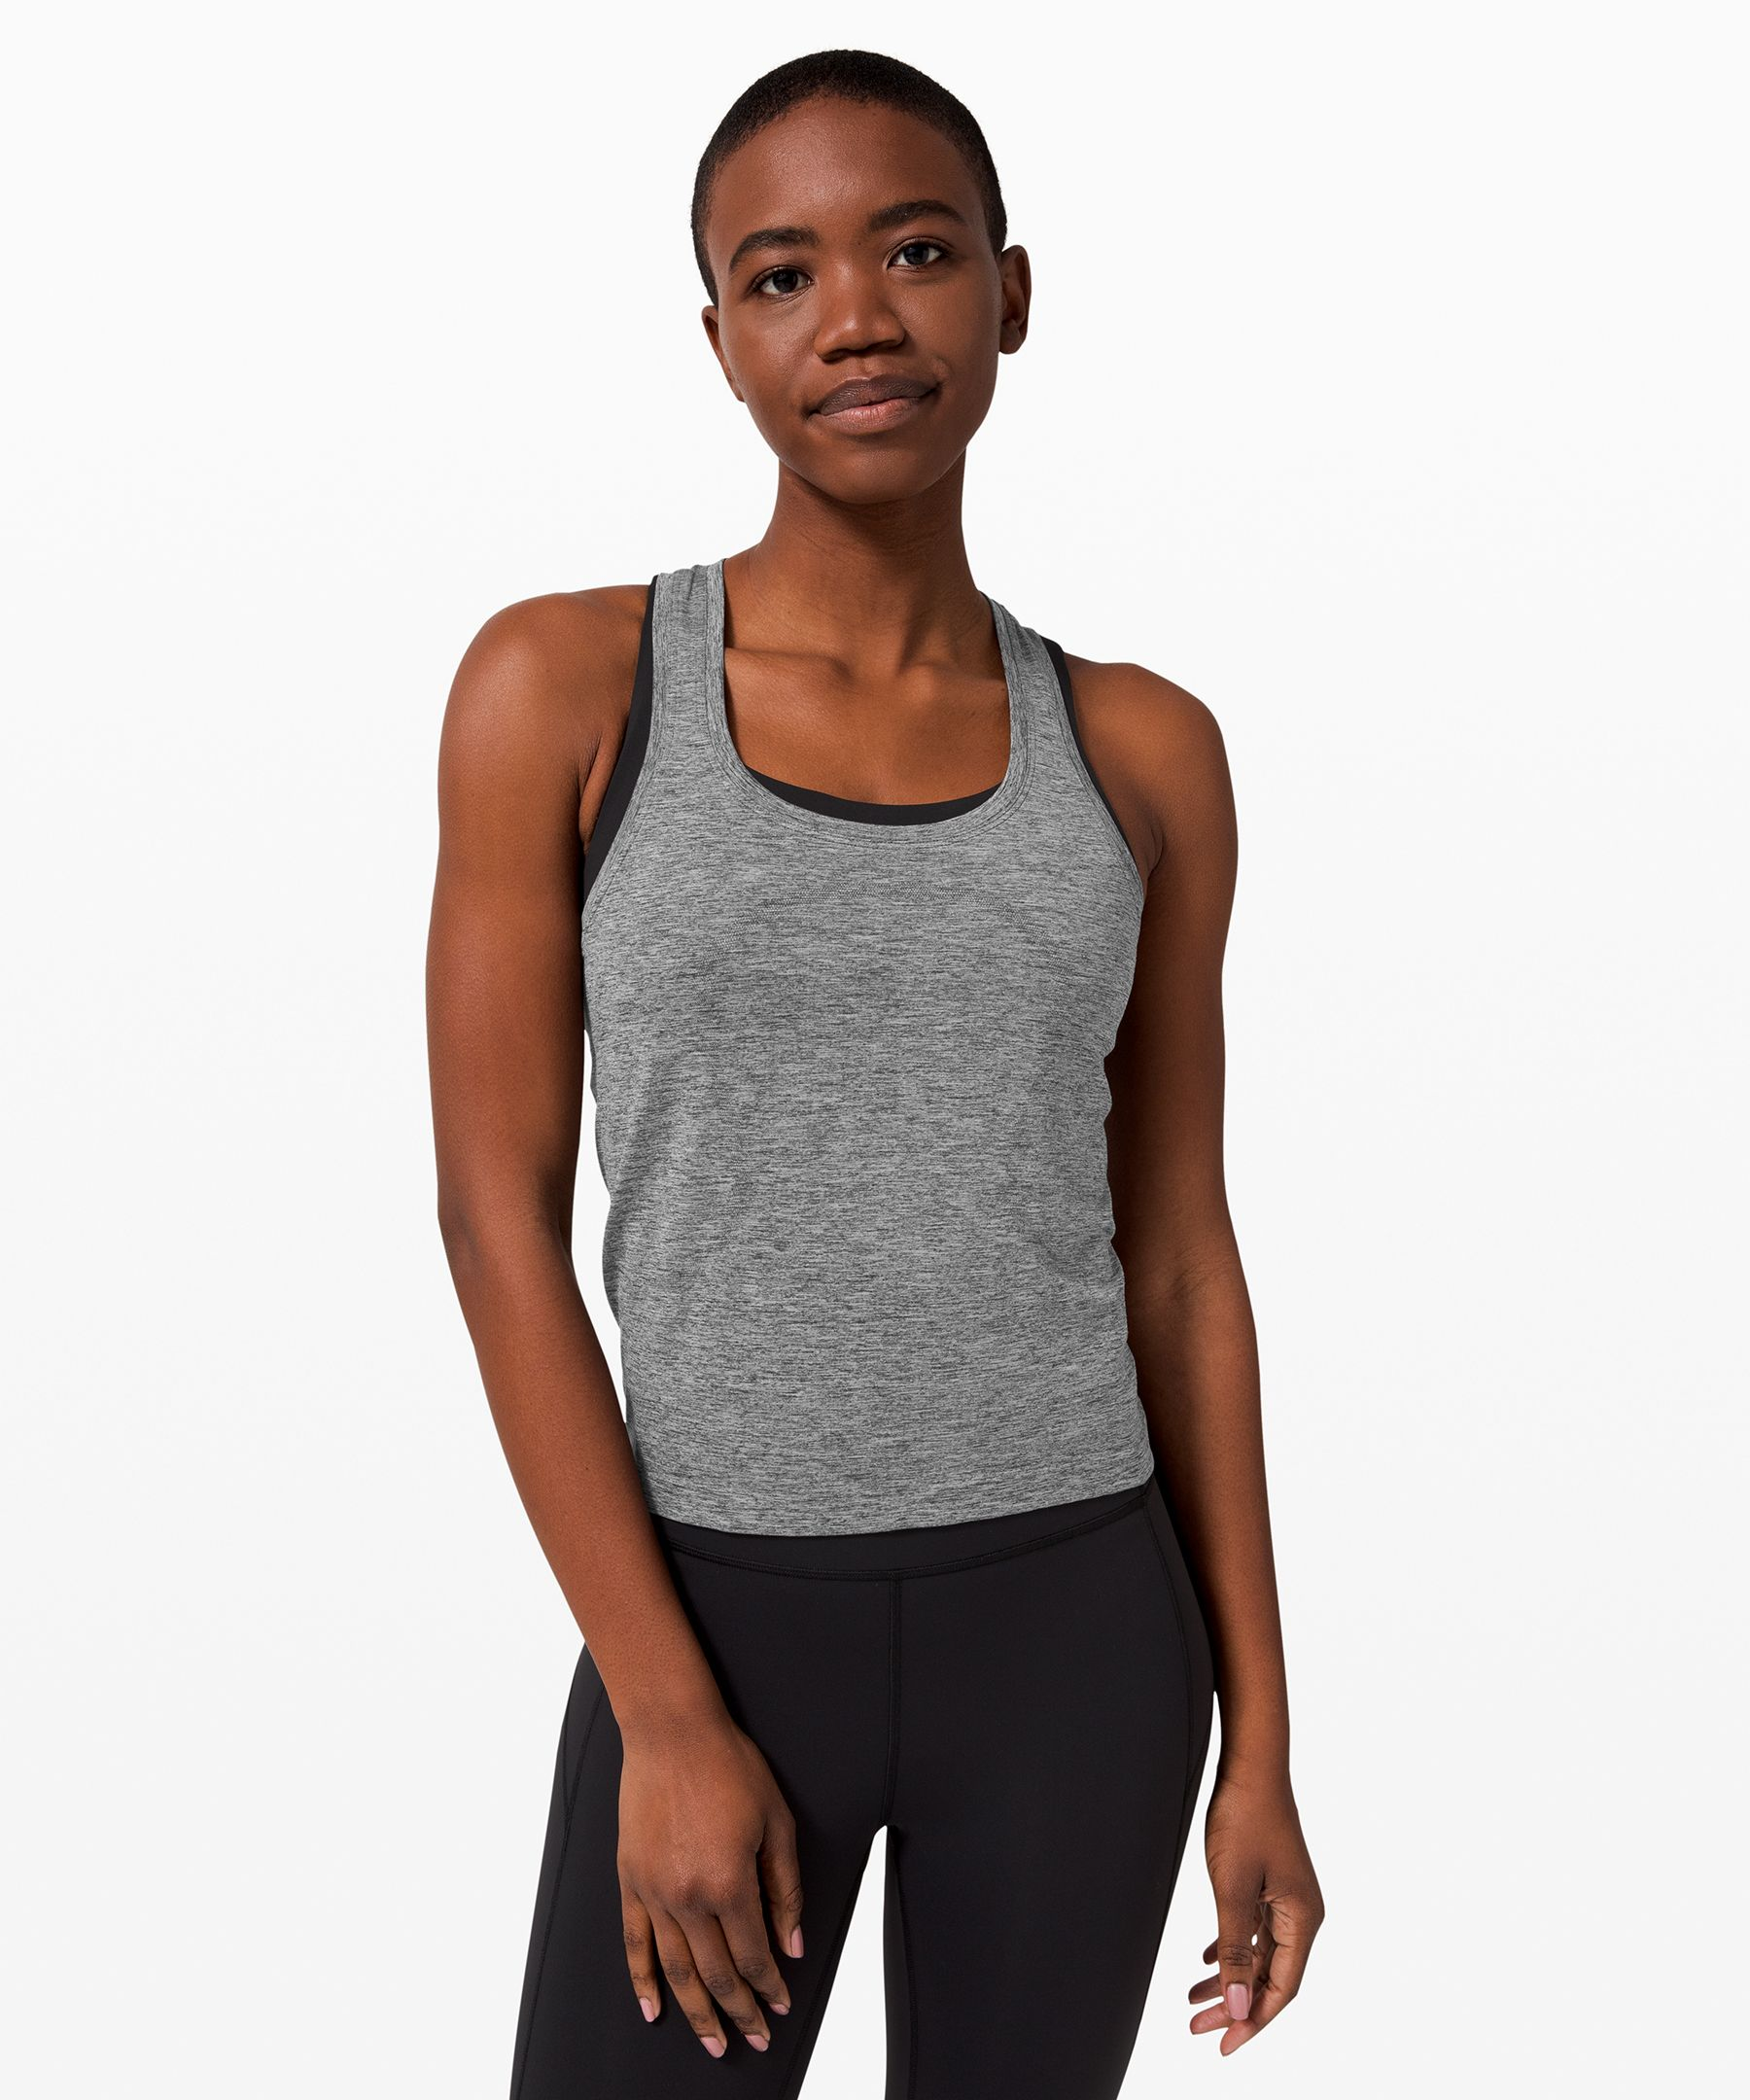 Whether you\\\'re running or  training, this anti-stink tank  gives you the lightweight,  breathable coverage you need.  Shortened length won\\\'t ride up  on long runs or race day.